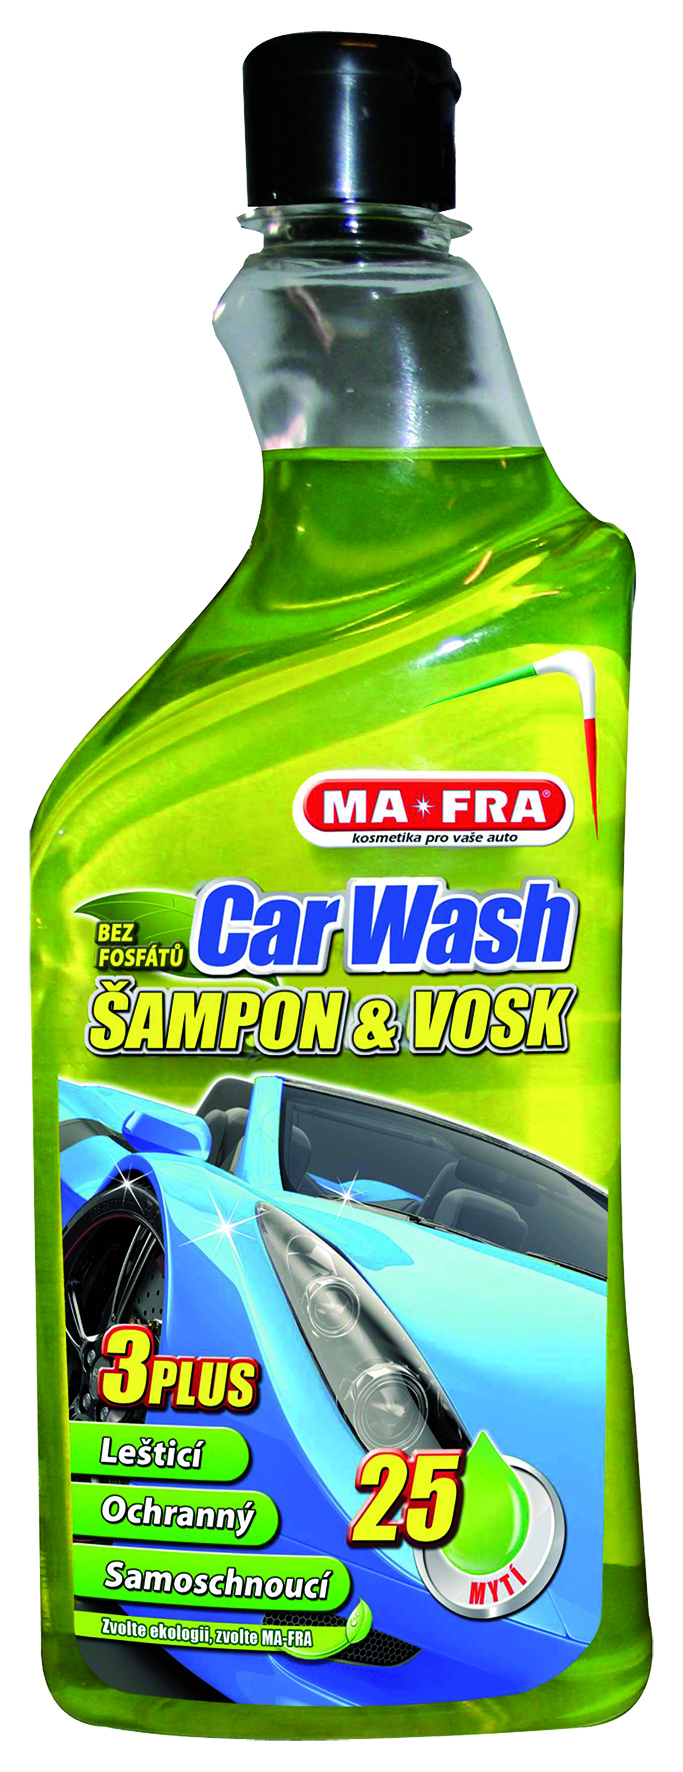 MA-FRA® CAR WASH Šampón s voskem 750ml